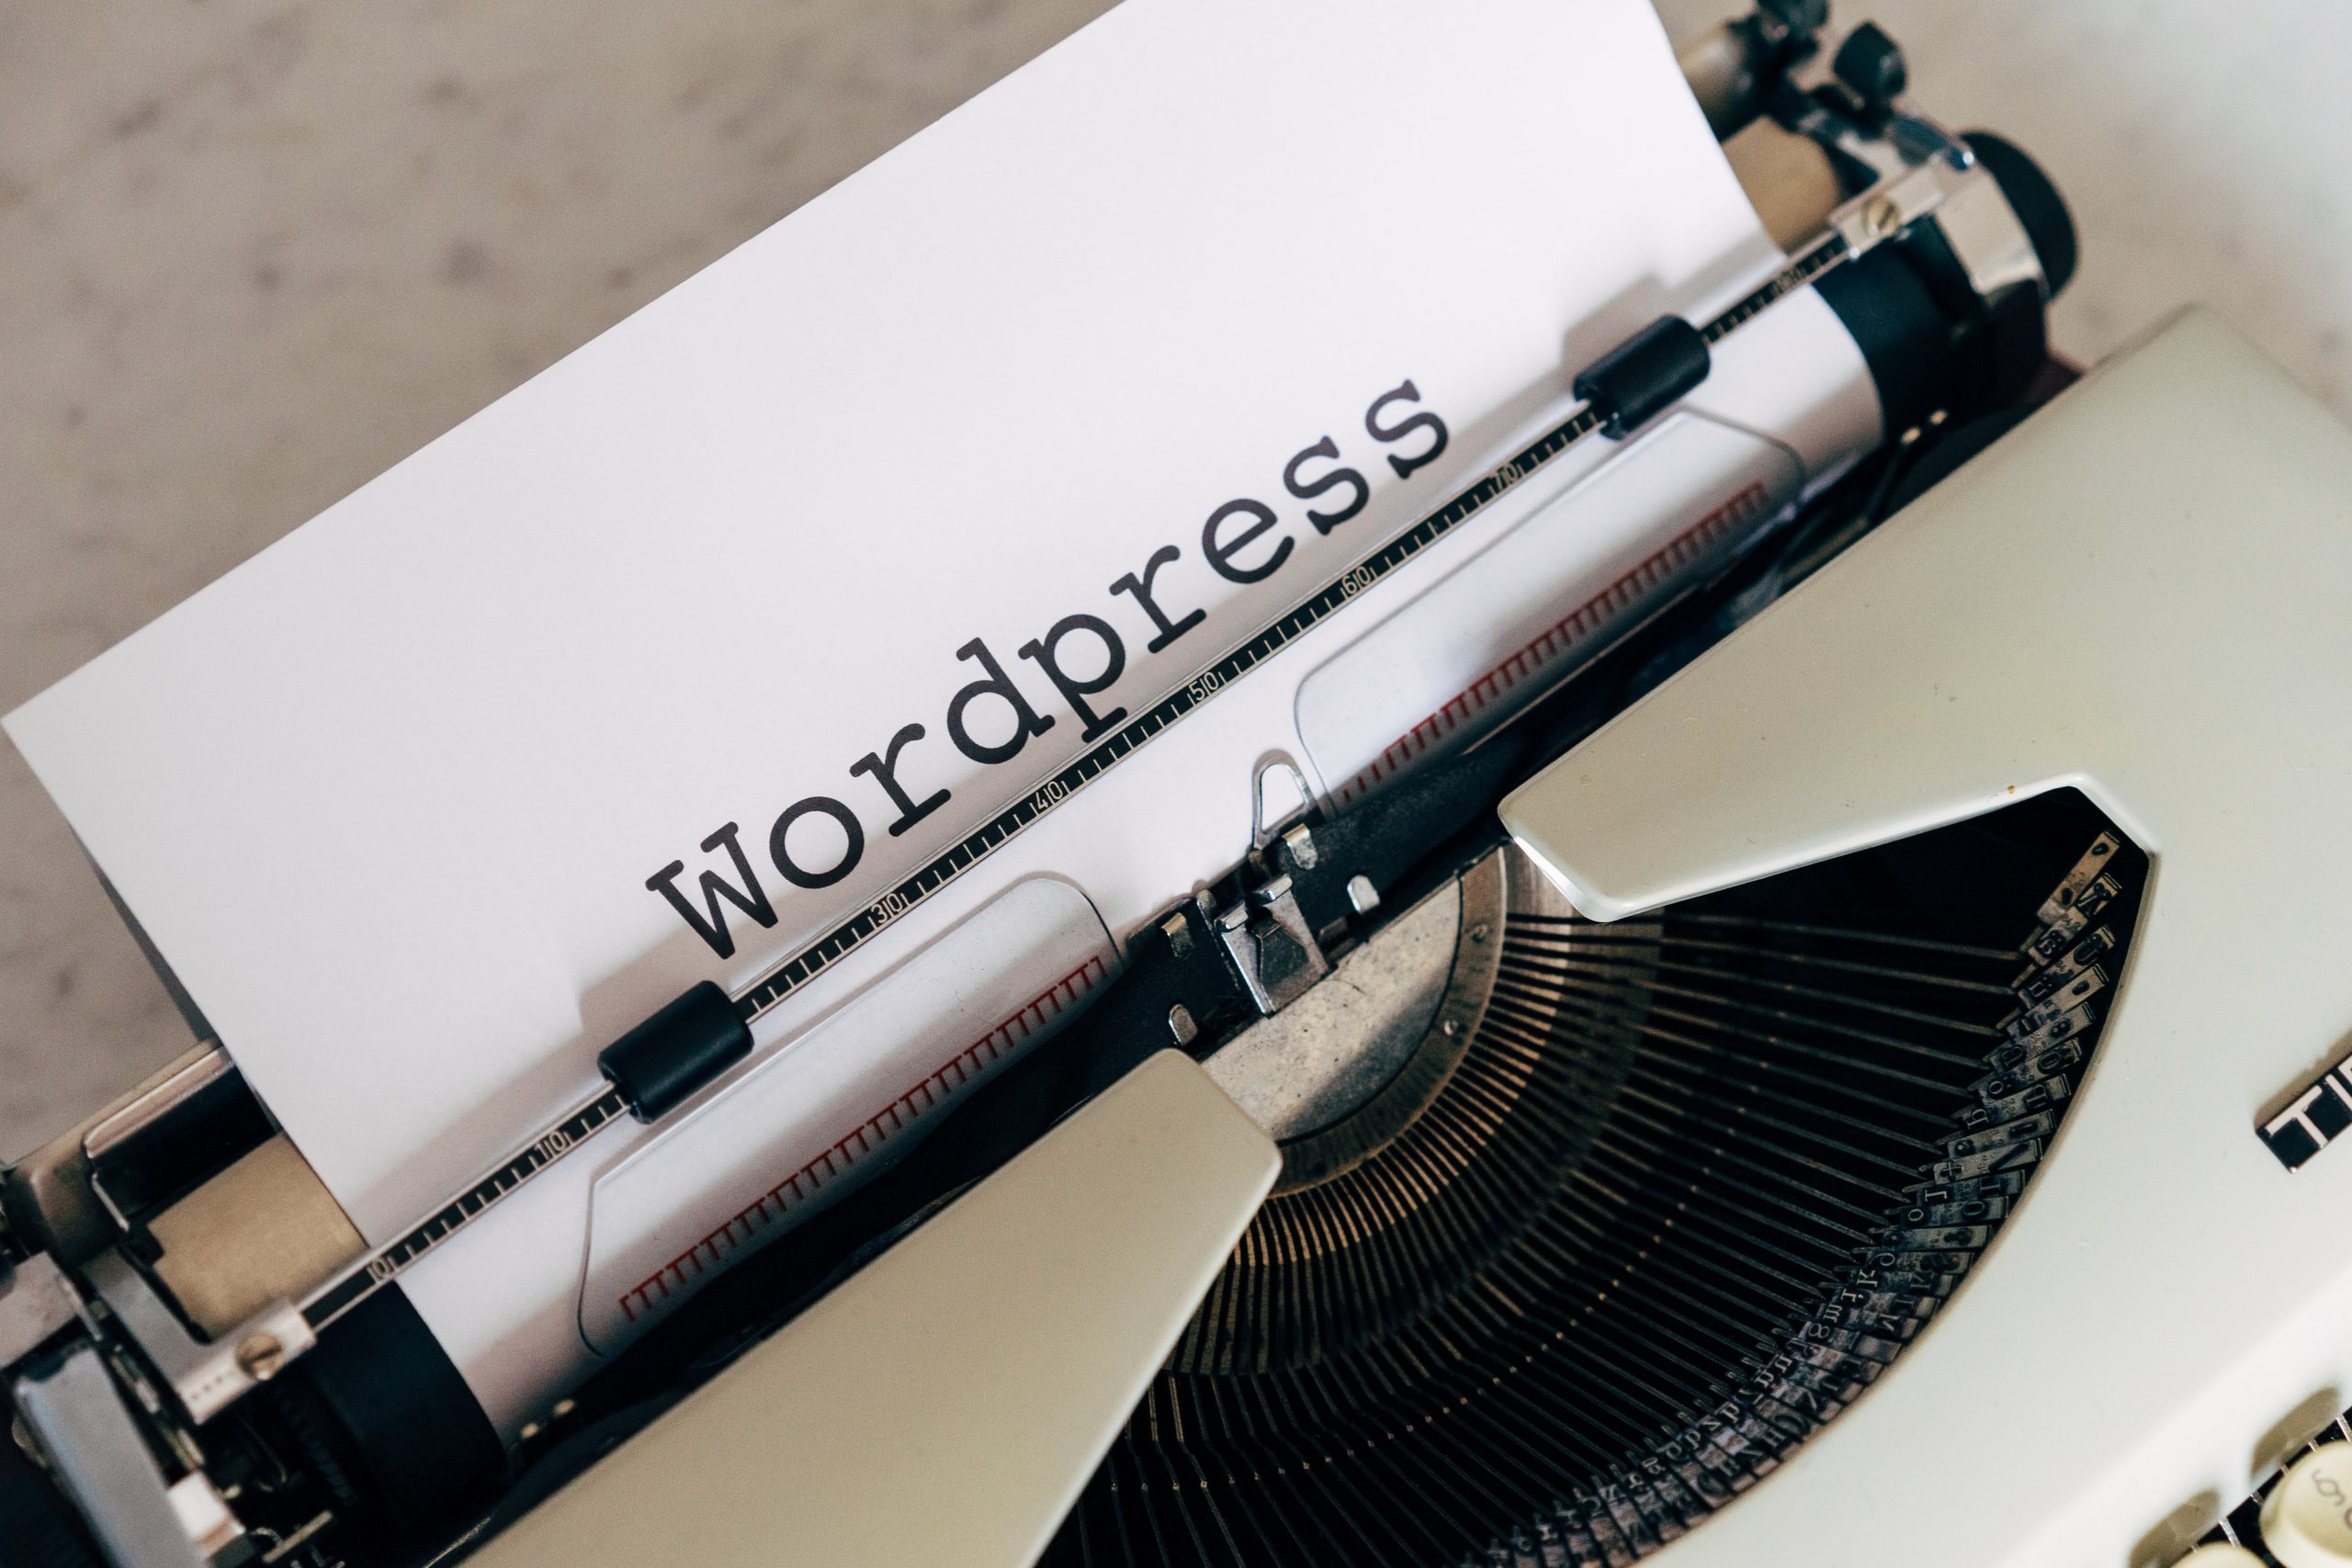 blogging with wordpress and create a wordpress blog in 2021